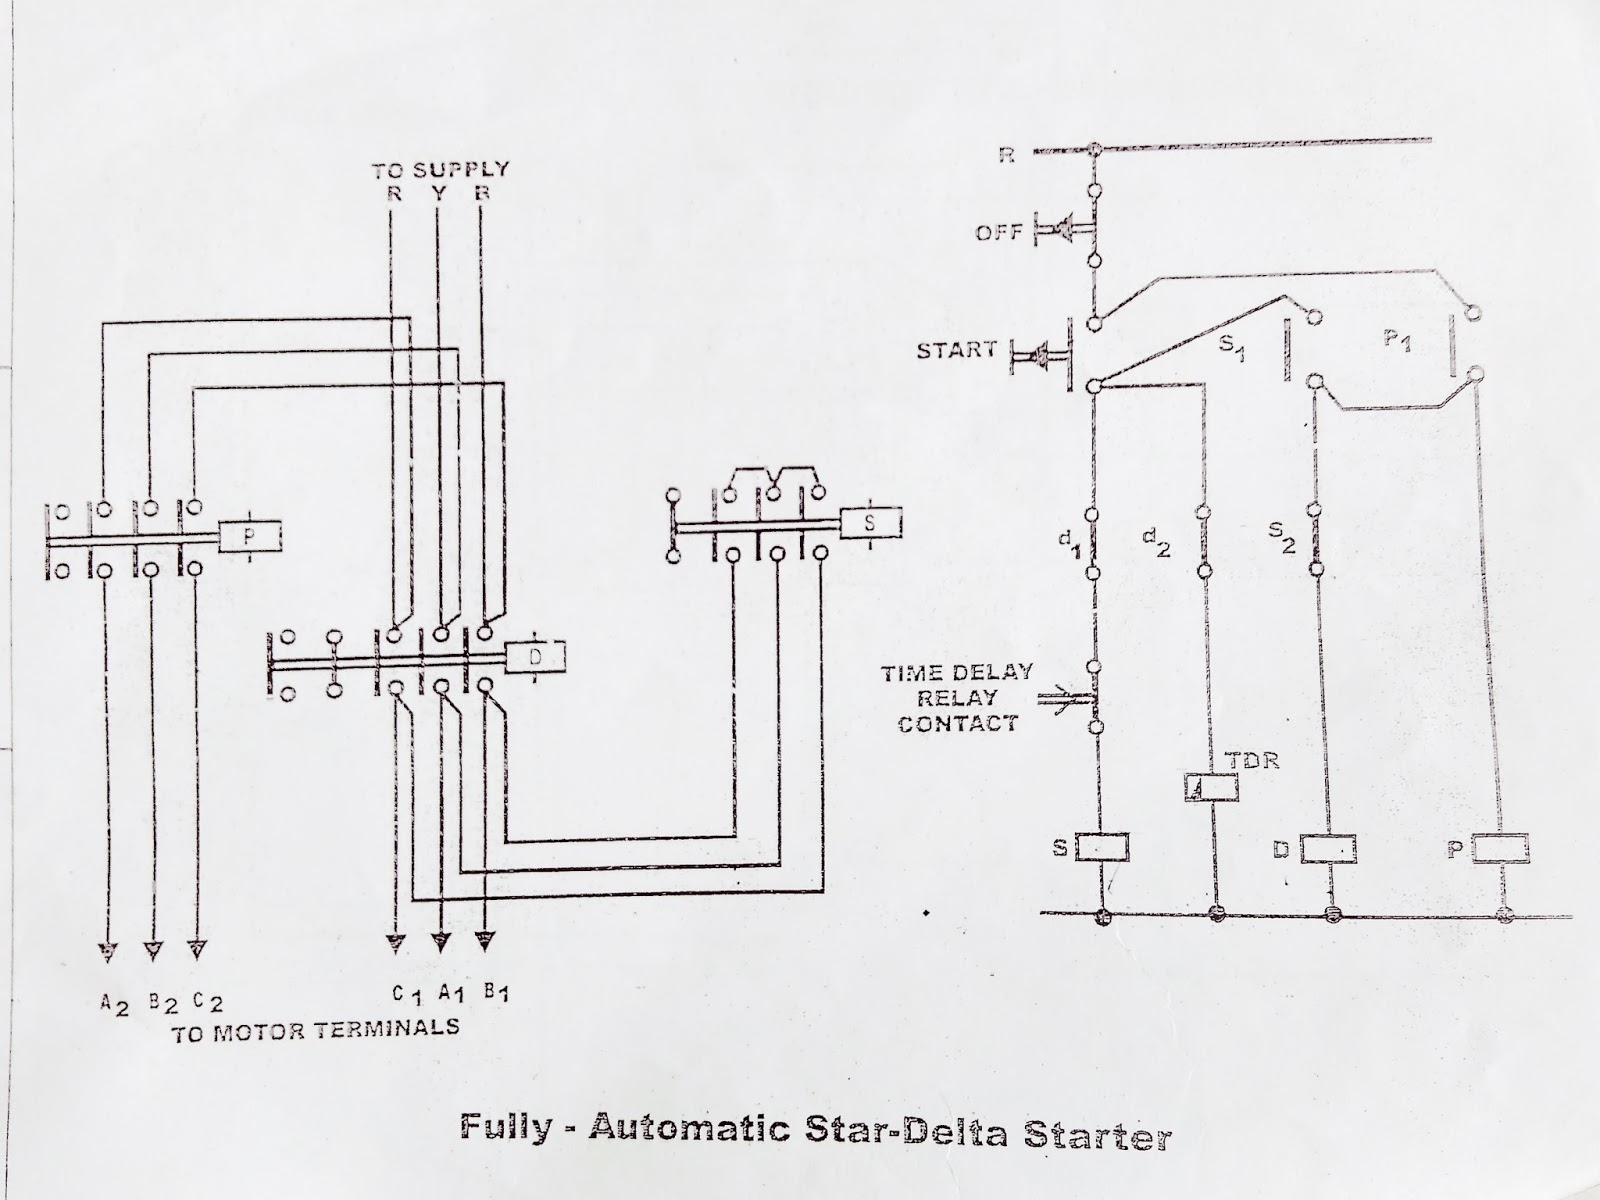 wiring diagram of automatic star delta starter